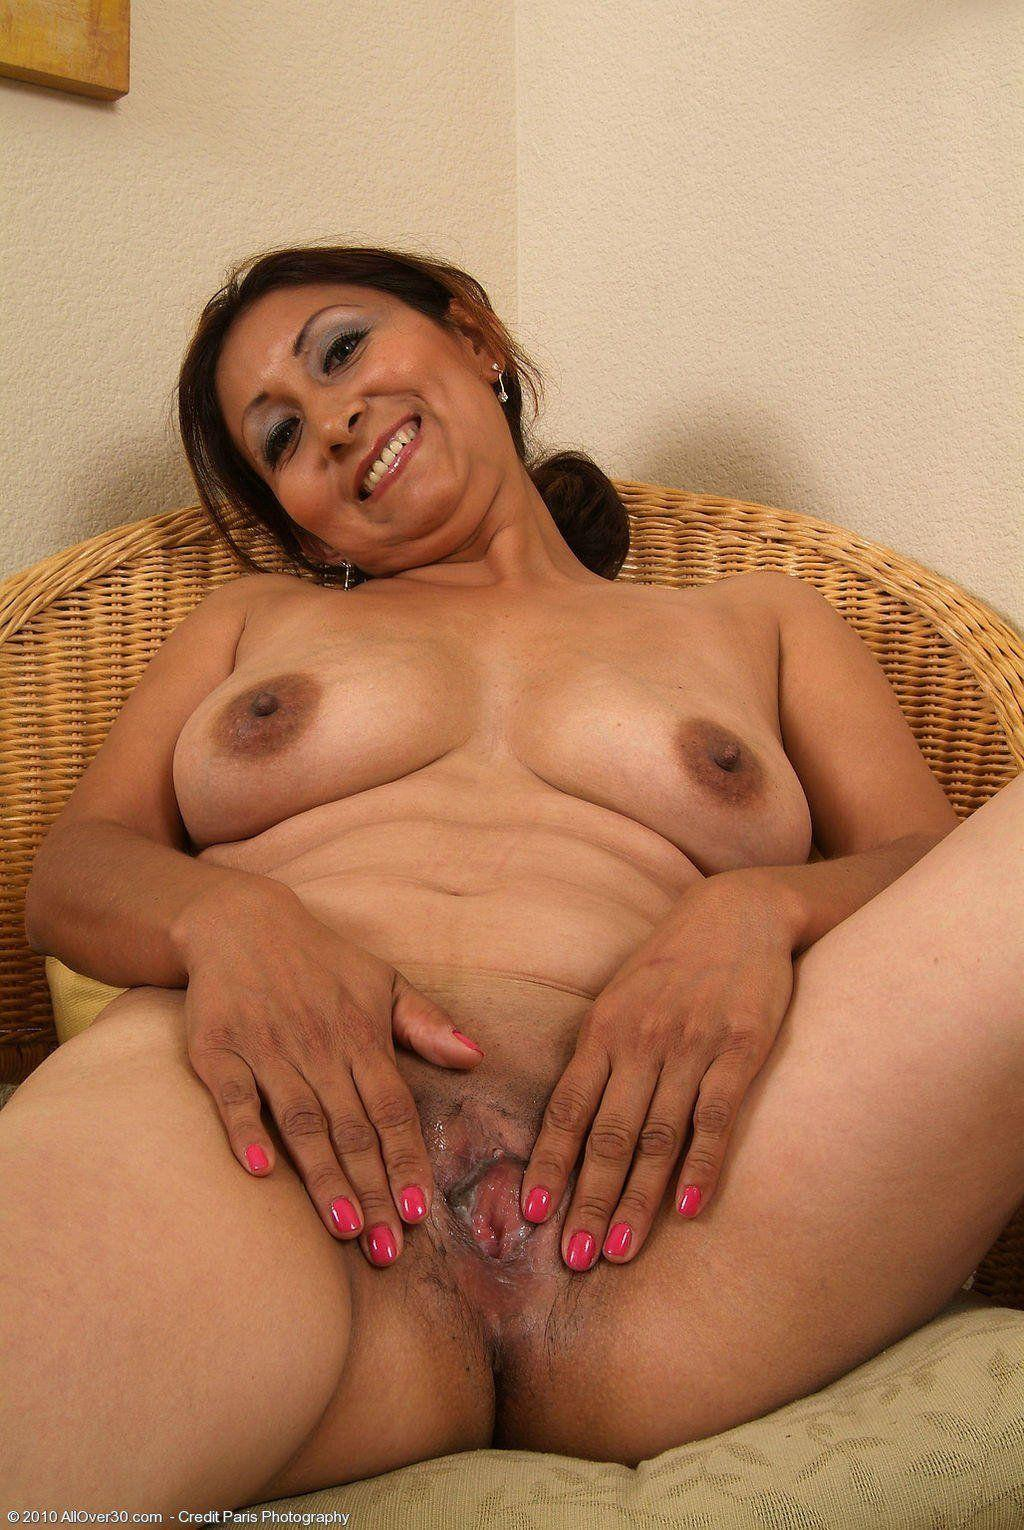 Gallery mature porn photo